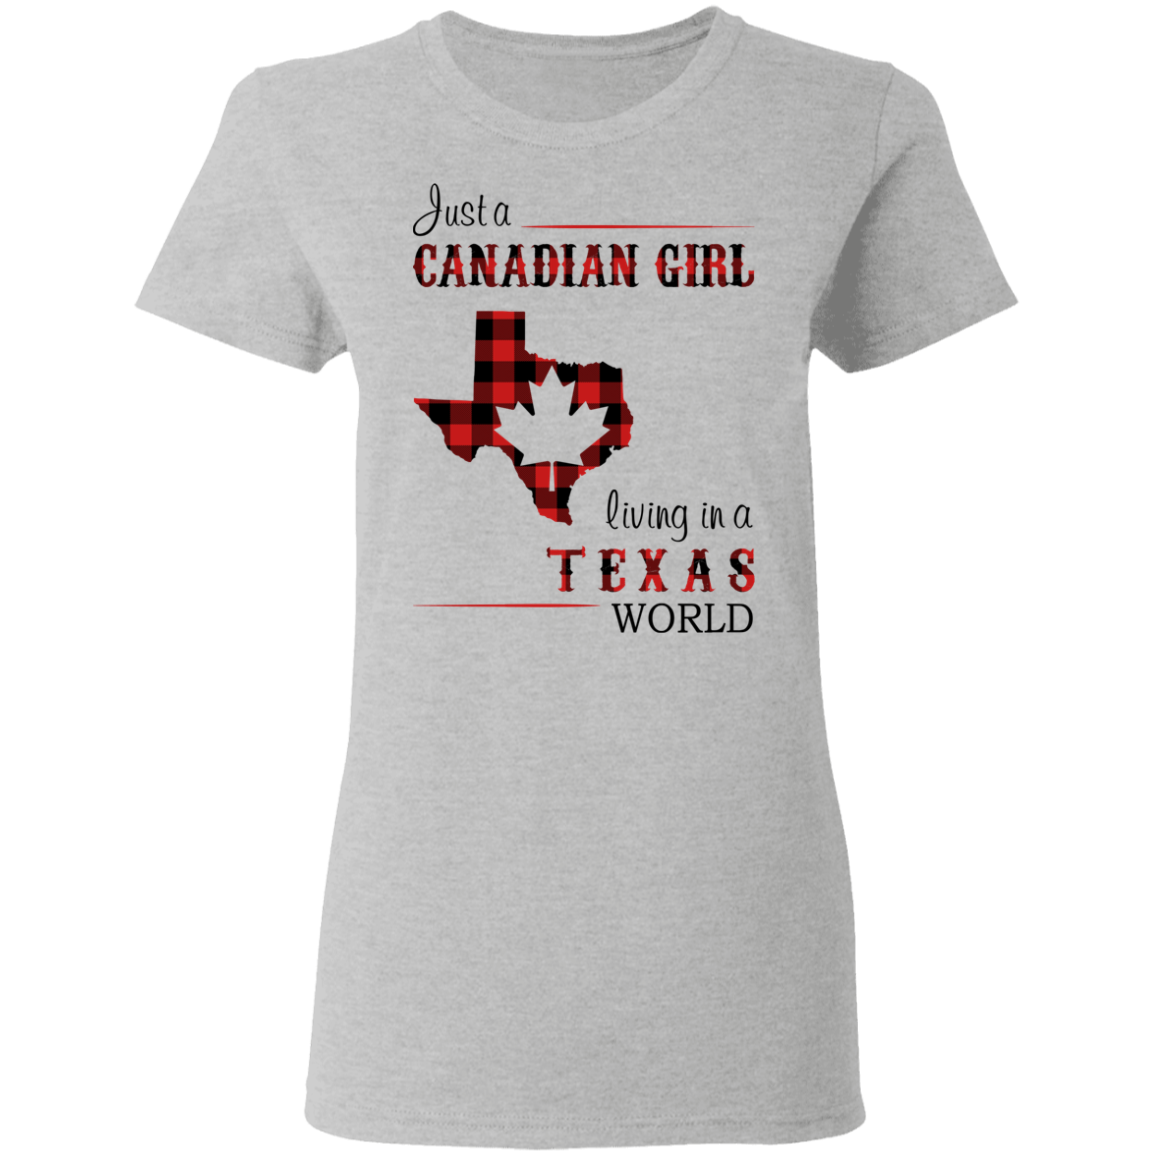 JUST A CANADIAN GIRL LIVING IN A TEXAS WORLD